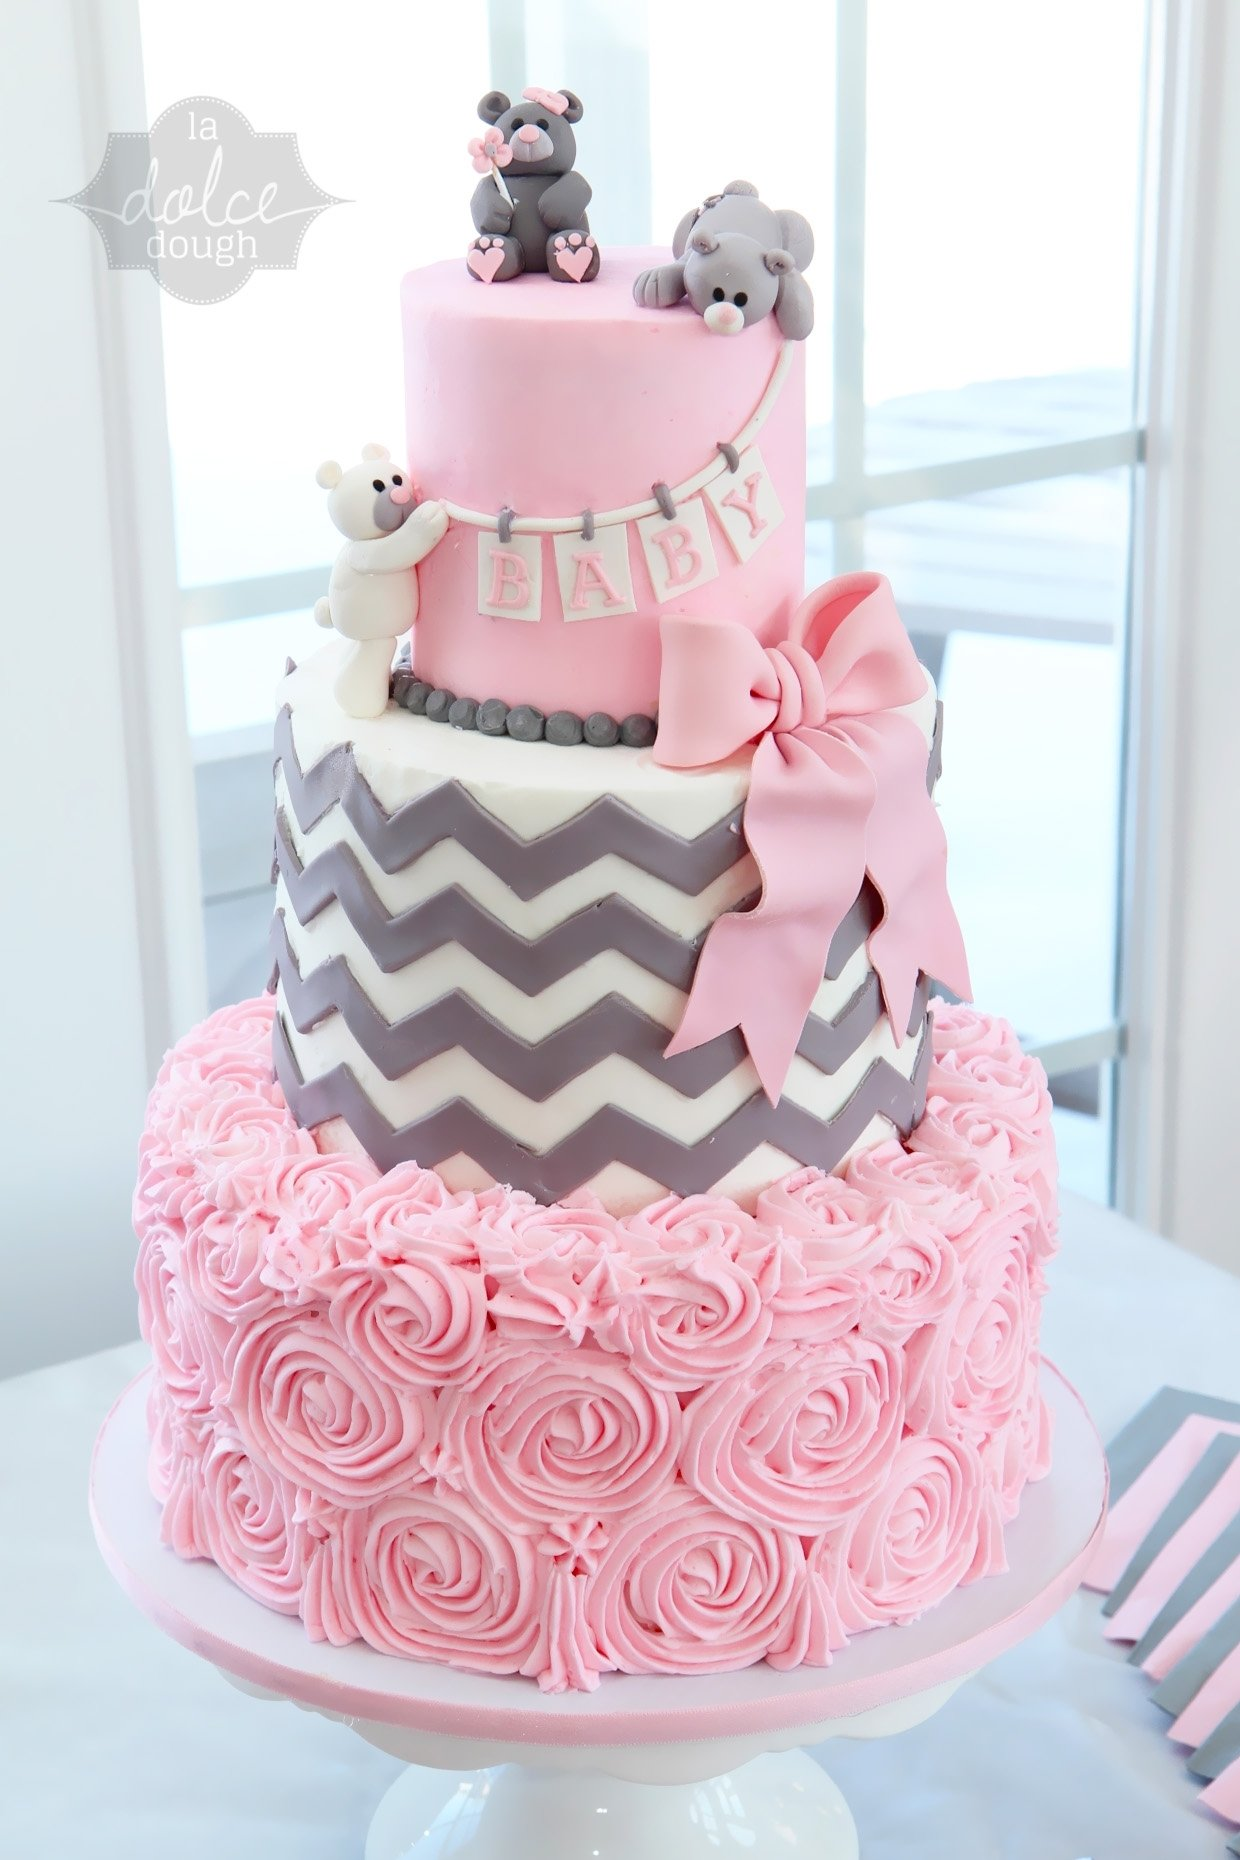 10 Elegant Cake Ideas For Baby Shower gorgeous baby shower cakes stay at home mum 9 2020